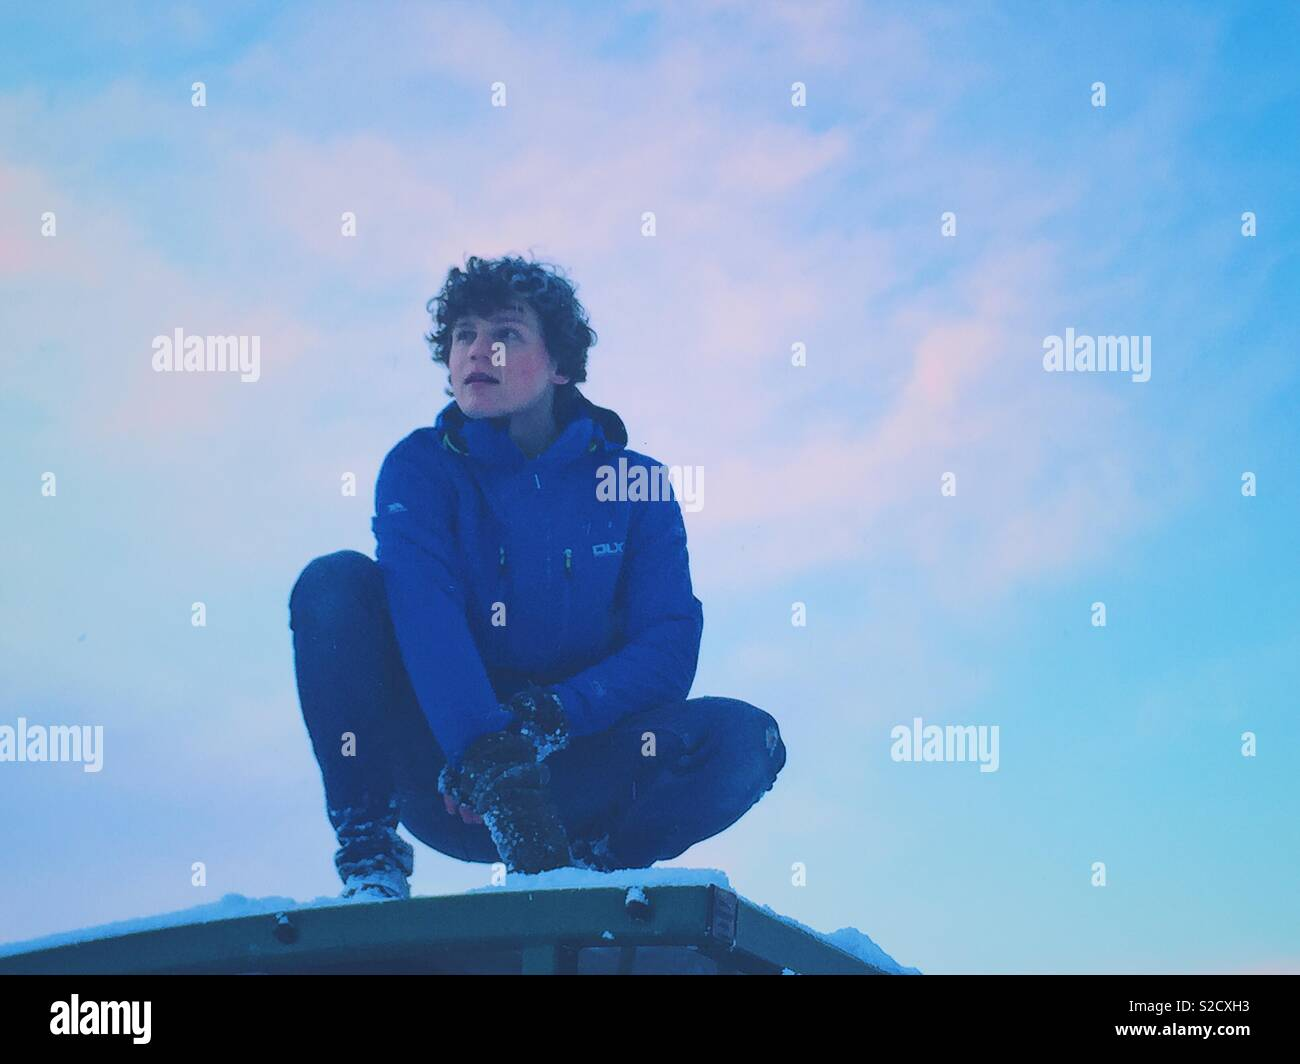 Boy crouched down on snowy rooftop, blue sky in the background - Stock Image